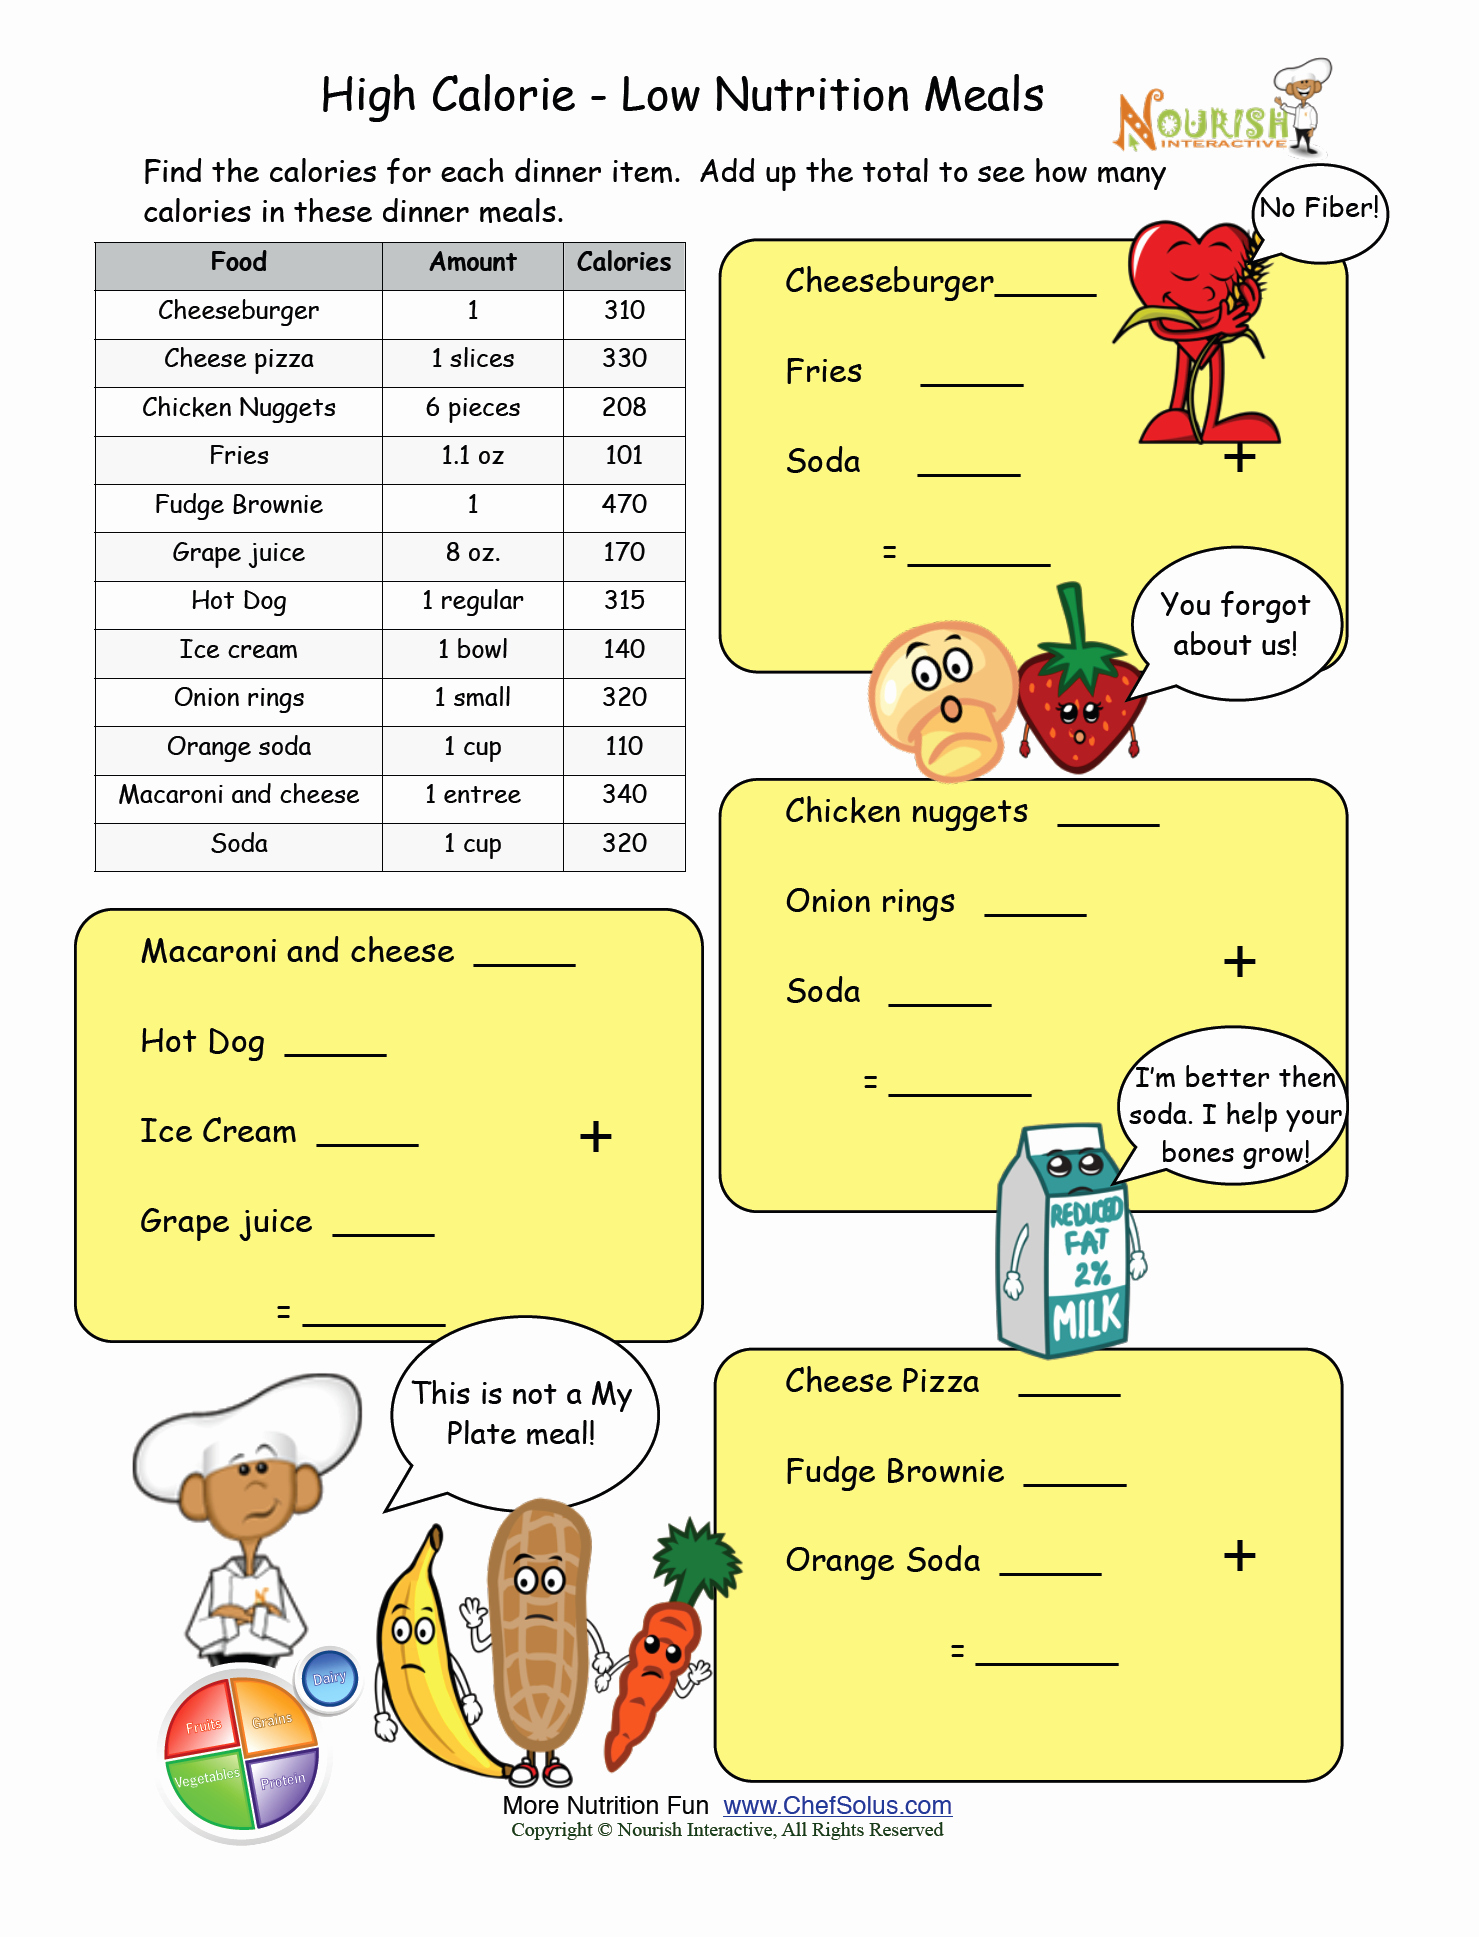 Nutrition Label Worksheet Answers Lovely Pin On Nutrition Worksheets and Games